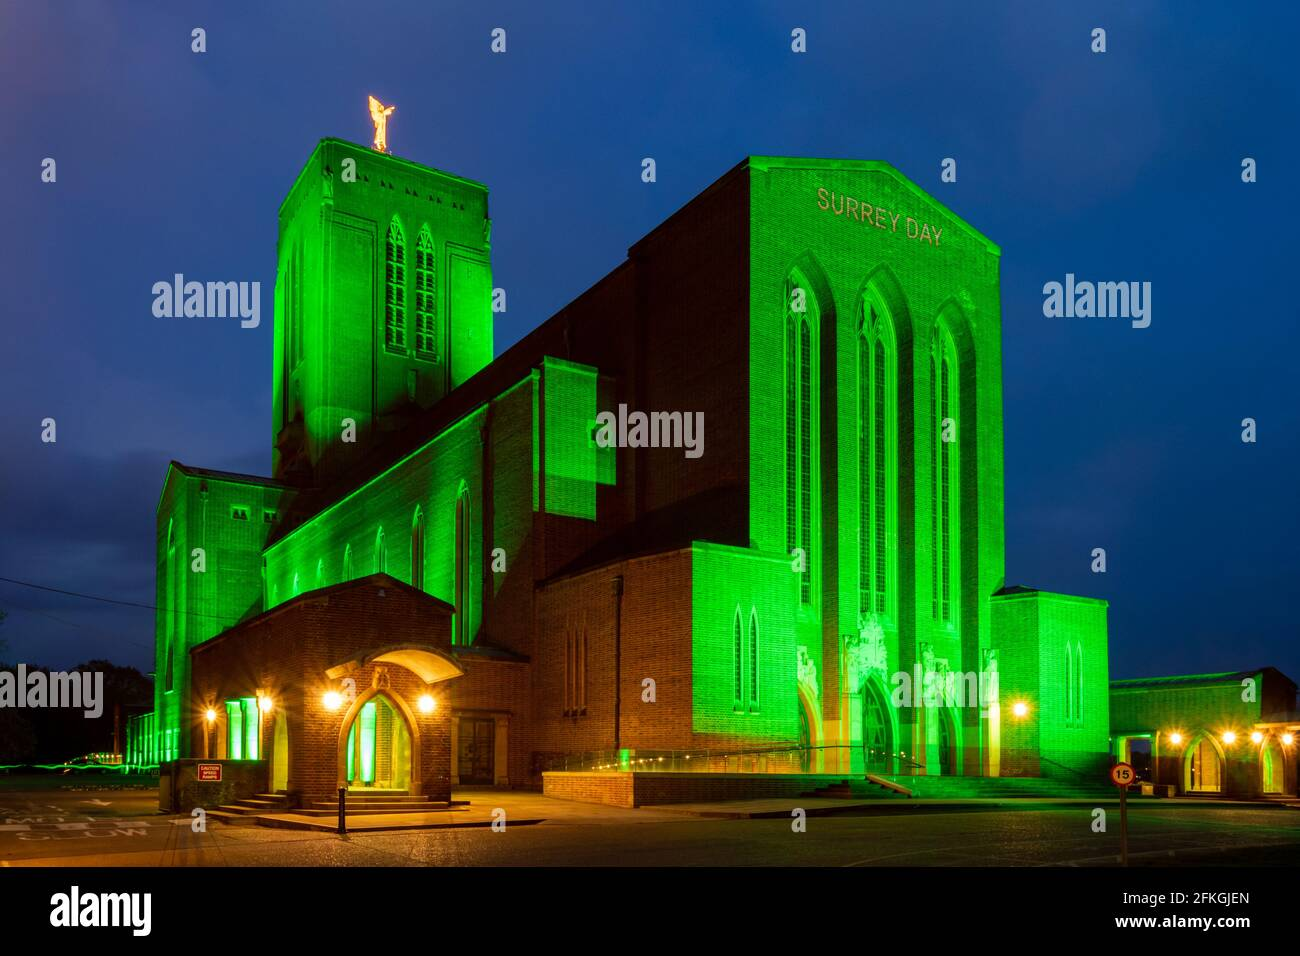 may-1st-2021-today-the-third-annual-surrey-day-was-held-with-various-events-and-celebrations-some-virtual-taking-place-in-the-evening-guildford-cathedral-was-illuminated-in-green-light-in-recognition-of-surrey-being-englands-most-densely-wooded-county-and-the-words-surrey-day-were-projected-onto-the-front-2FKGJEN.jpg